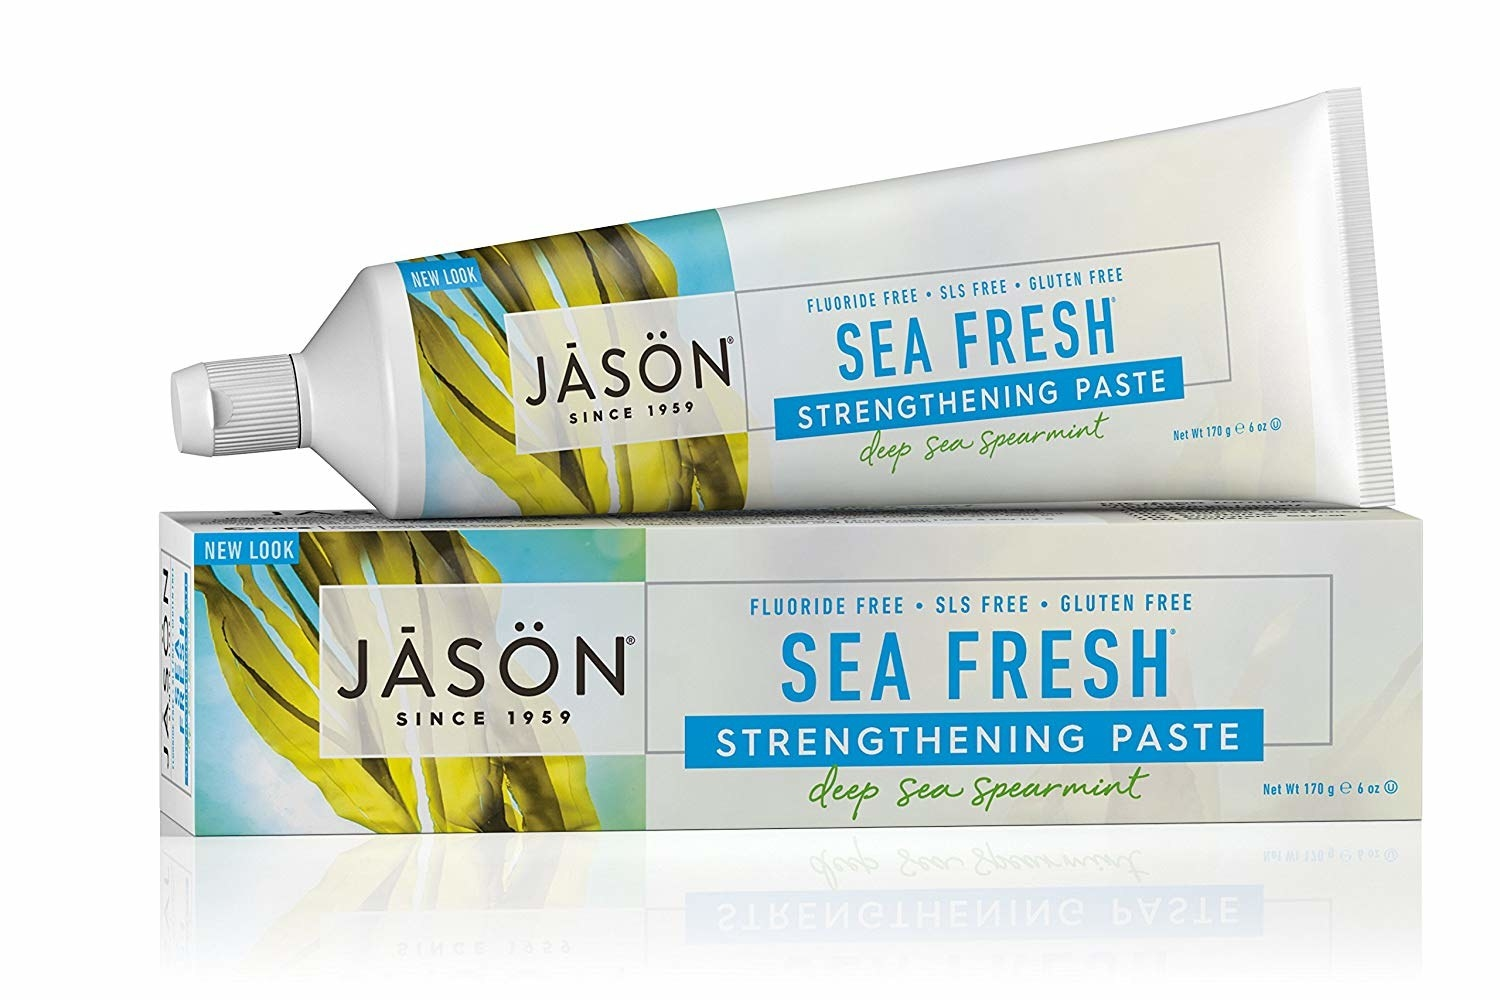 Sea Fresh Strengthening Paste